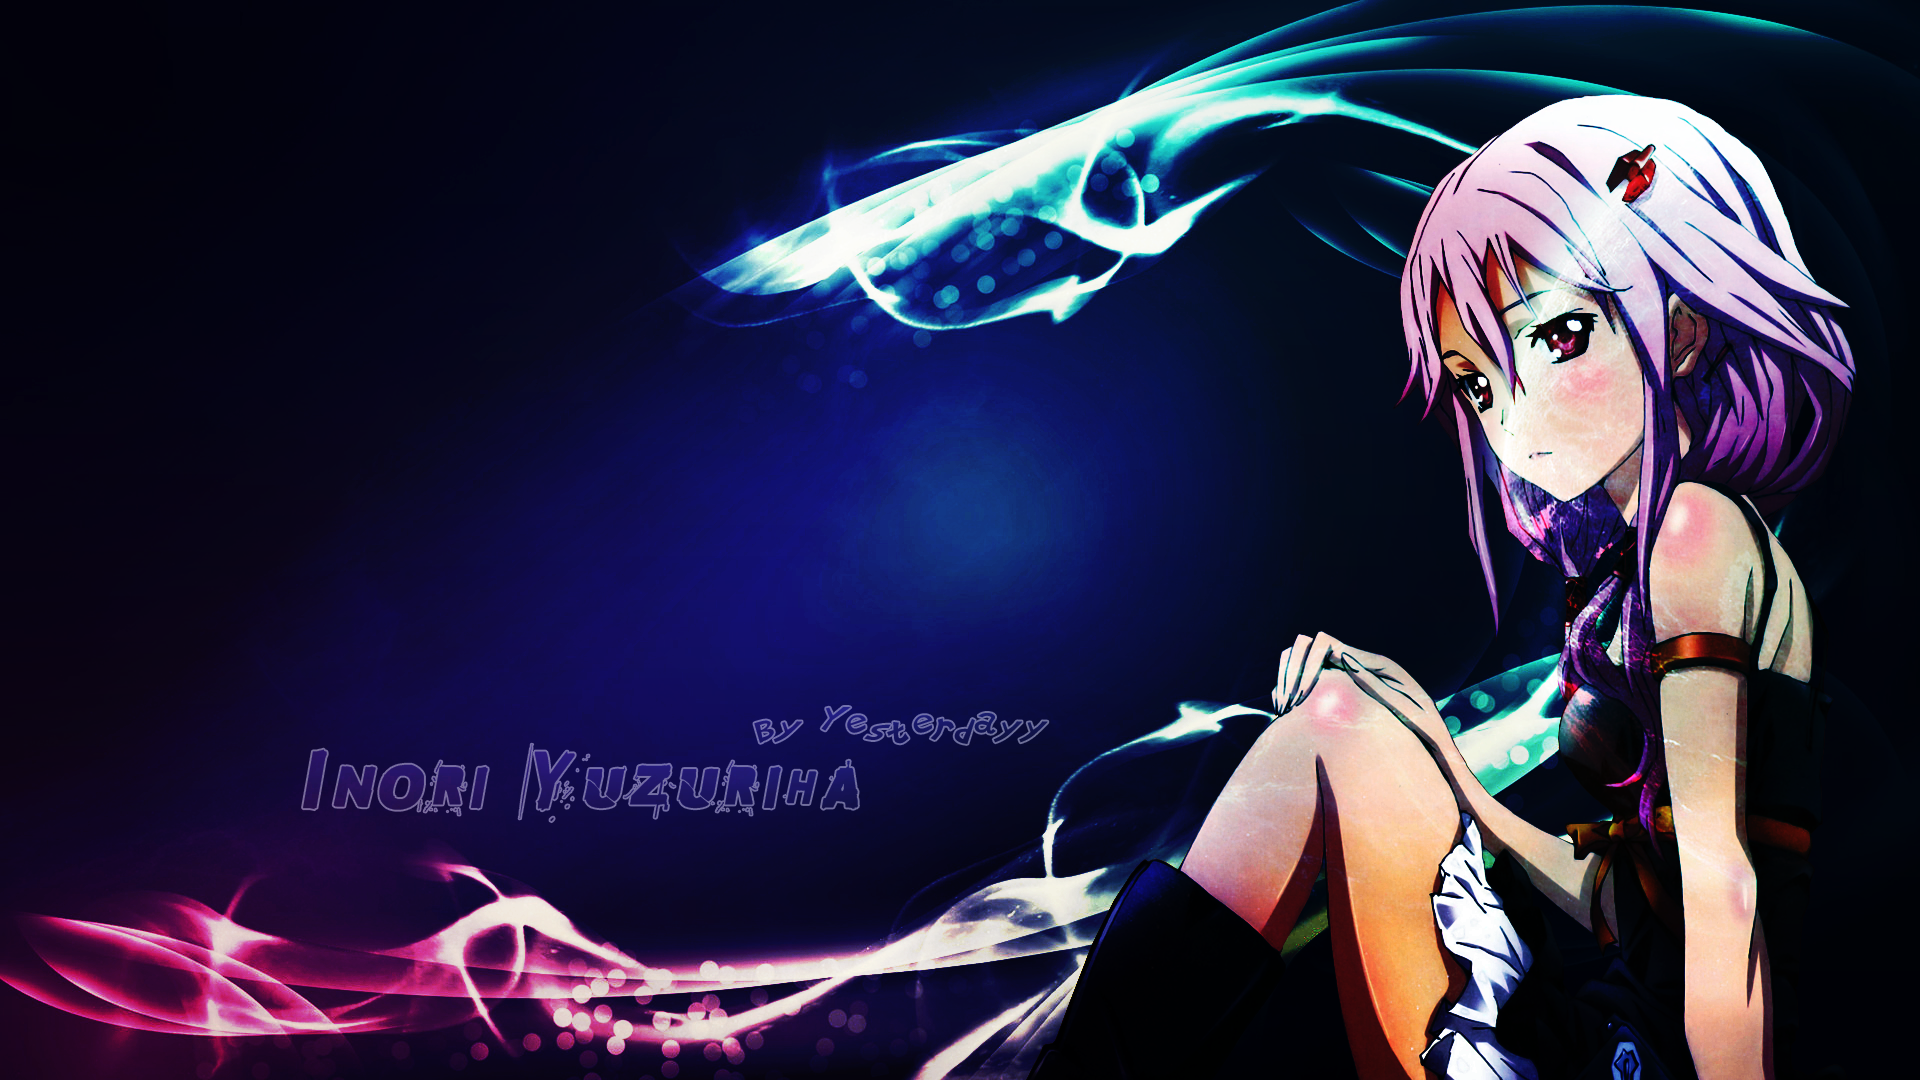 Guilty Crown HD Wallpaper Background Image 1920x1080 ID 1920x1080